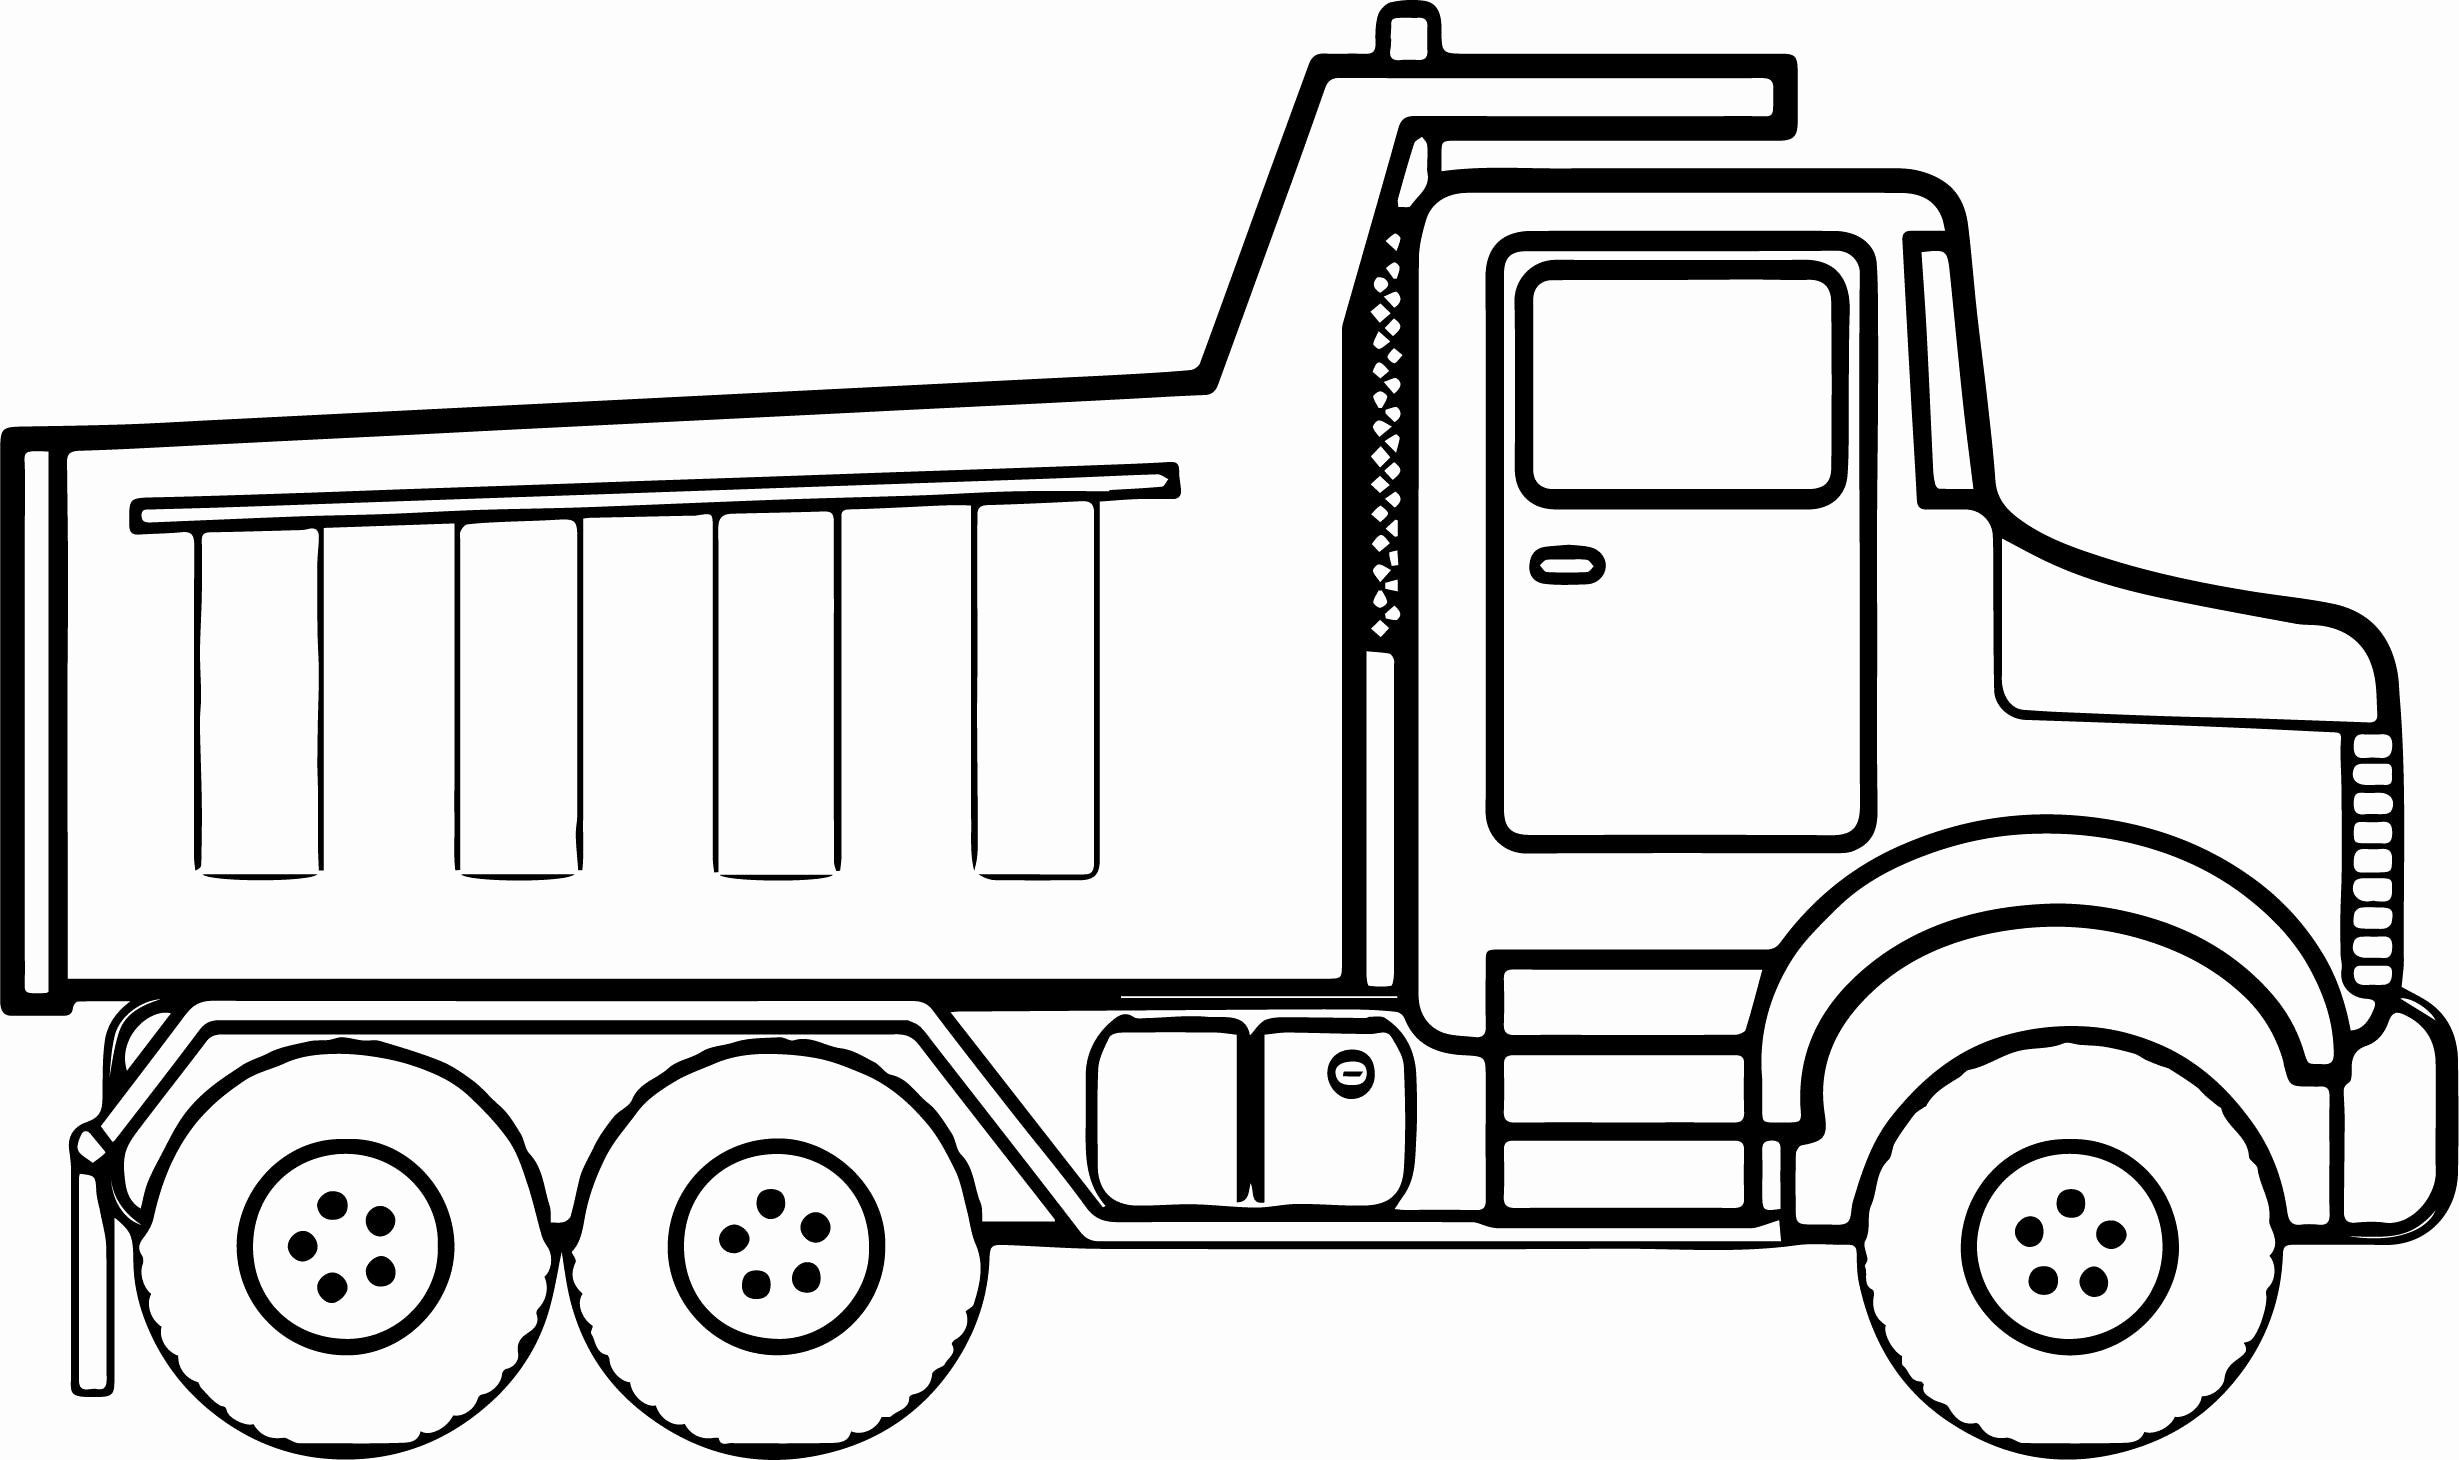 Free Coloring Pages Trucks Unique Luxury Flat Bed Coloring Pages Lovespells In 2020 Truck Coloring Pages Monster Truck Coloring Pages Cars Coloring Pages